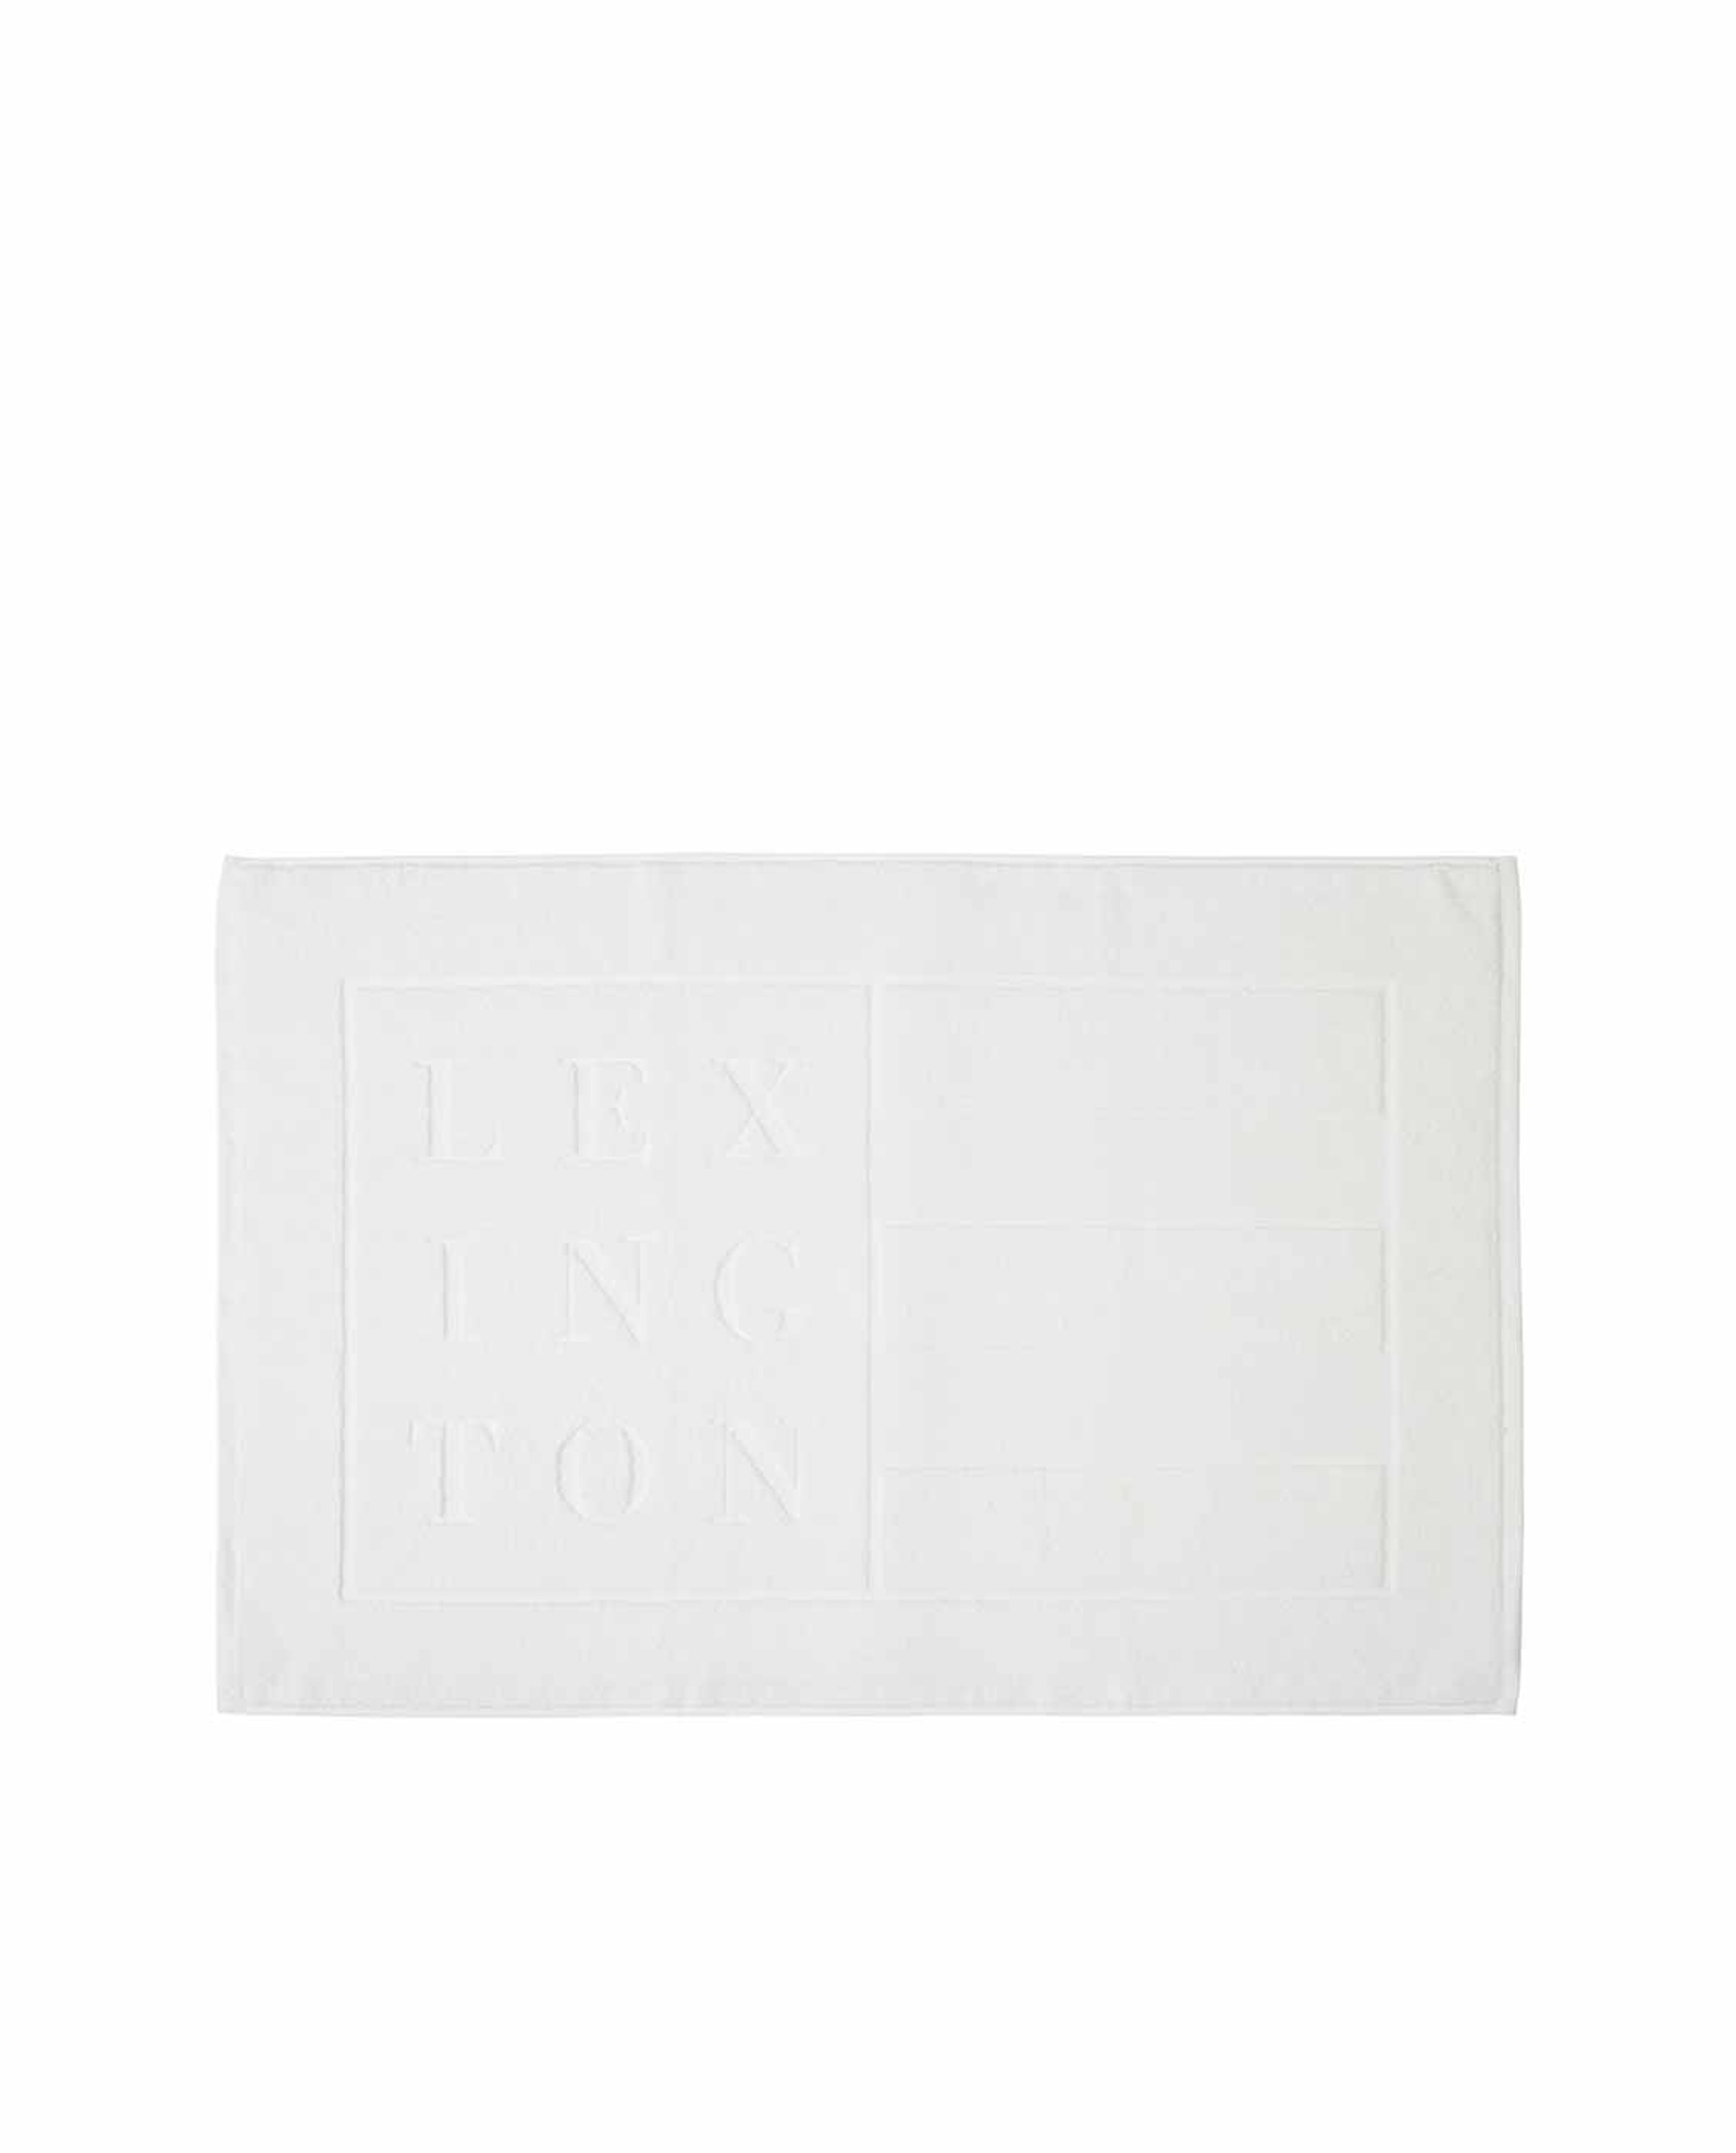 Lexington Hotel Bathrug, White